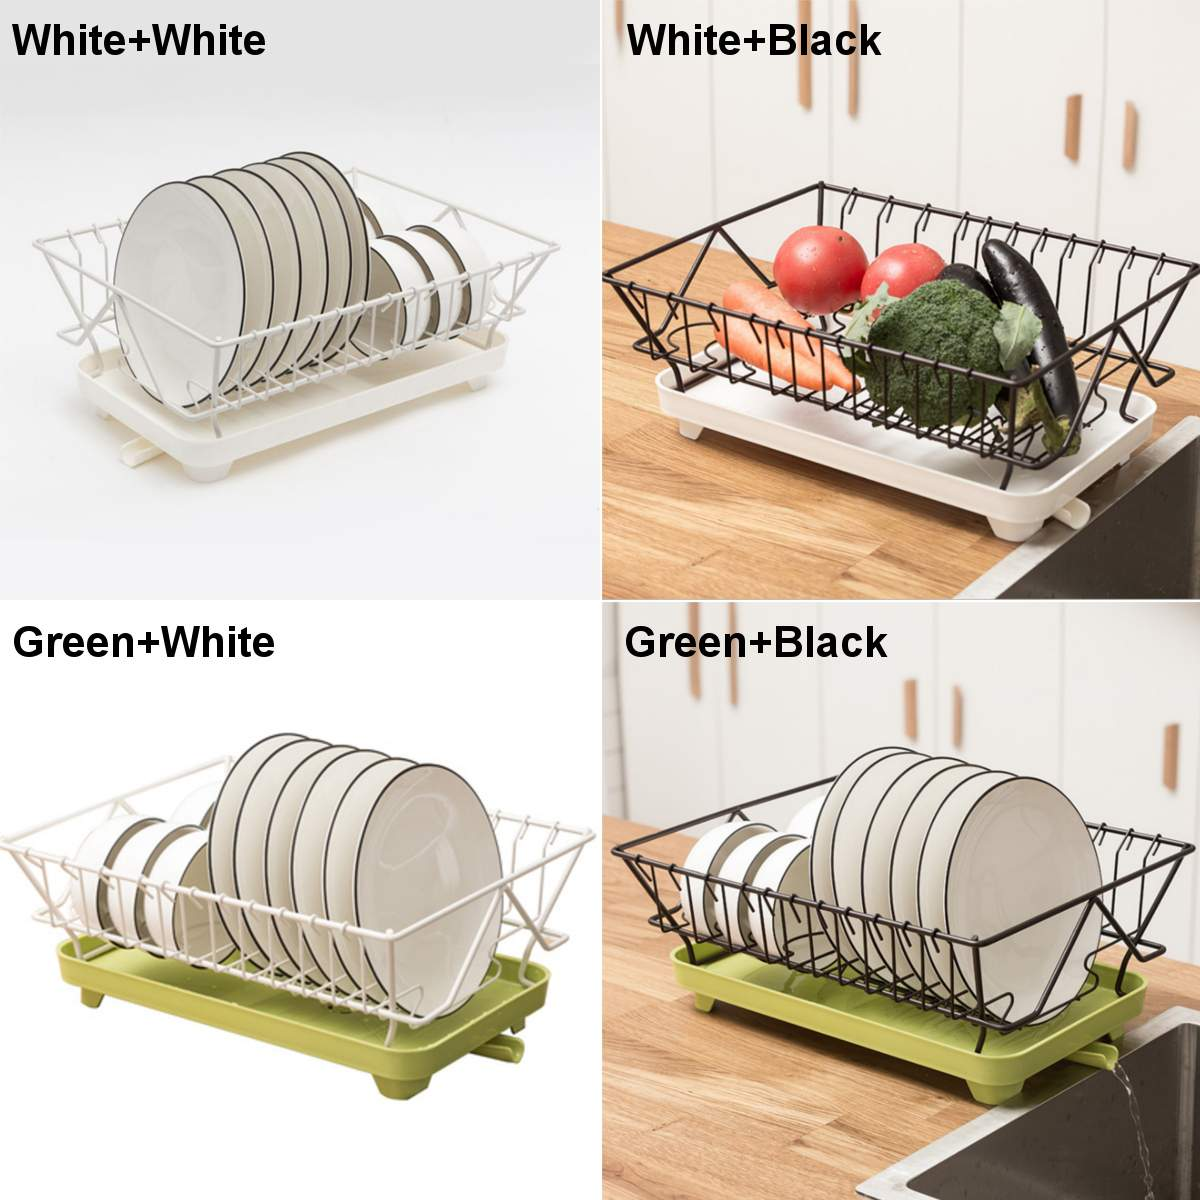 New Stainless Steel Dish Drainer Drying Rack Stand With Removable Rust Proof Utensil Holder For Kitchen Counter Storage Rack